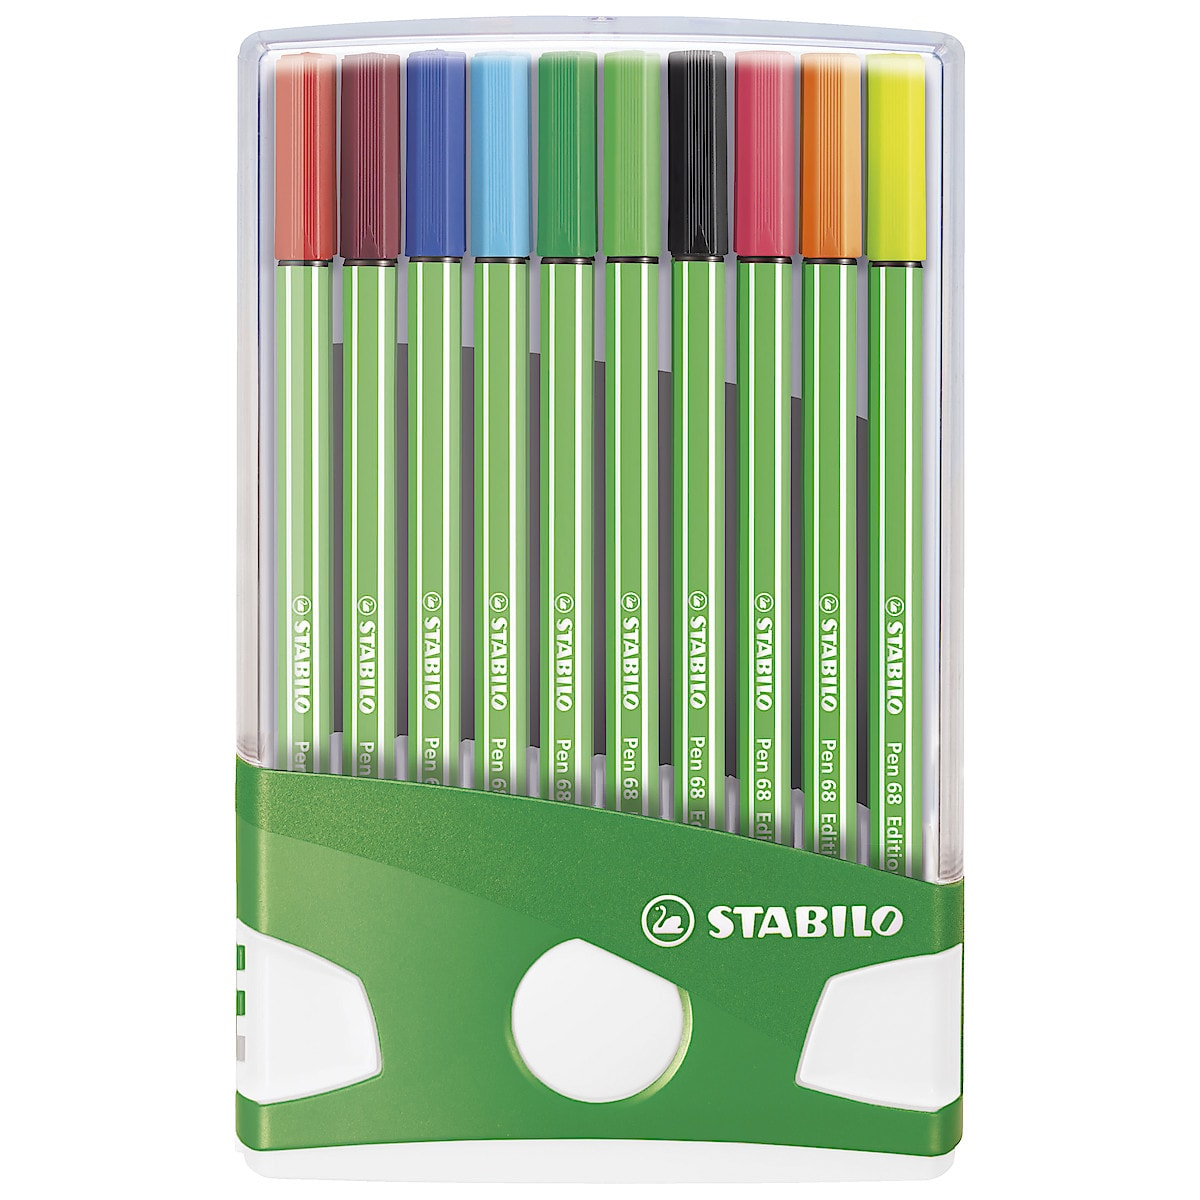 Set of 10 Fineliner Stabilo 68 Coloured Pens Green Edition